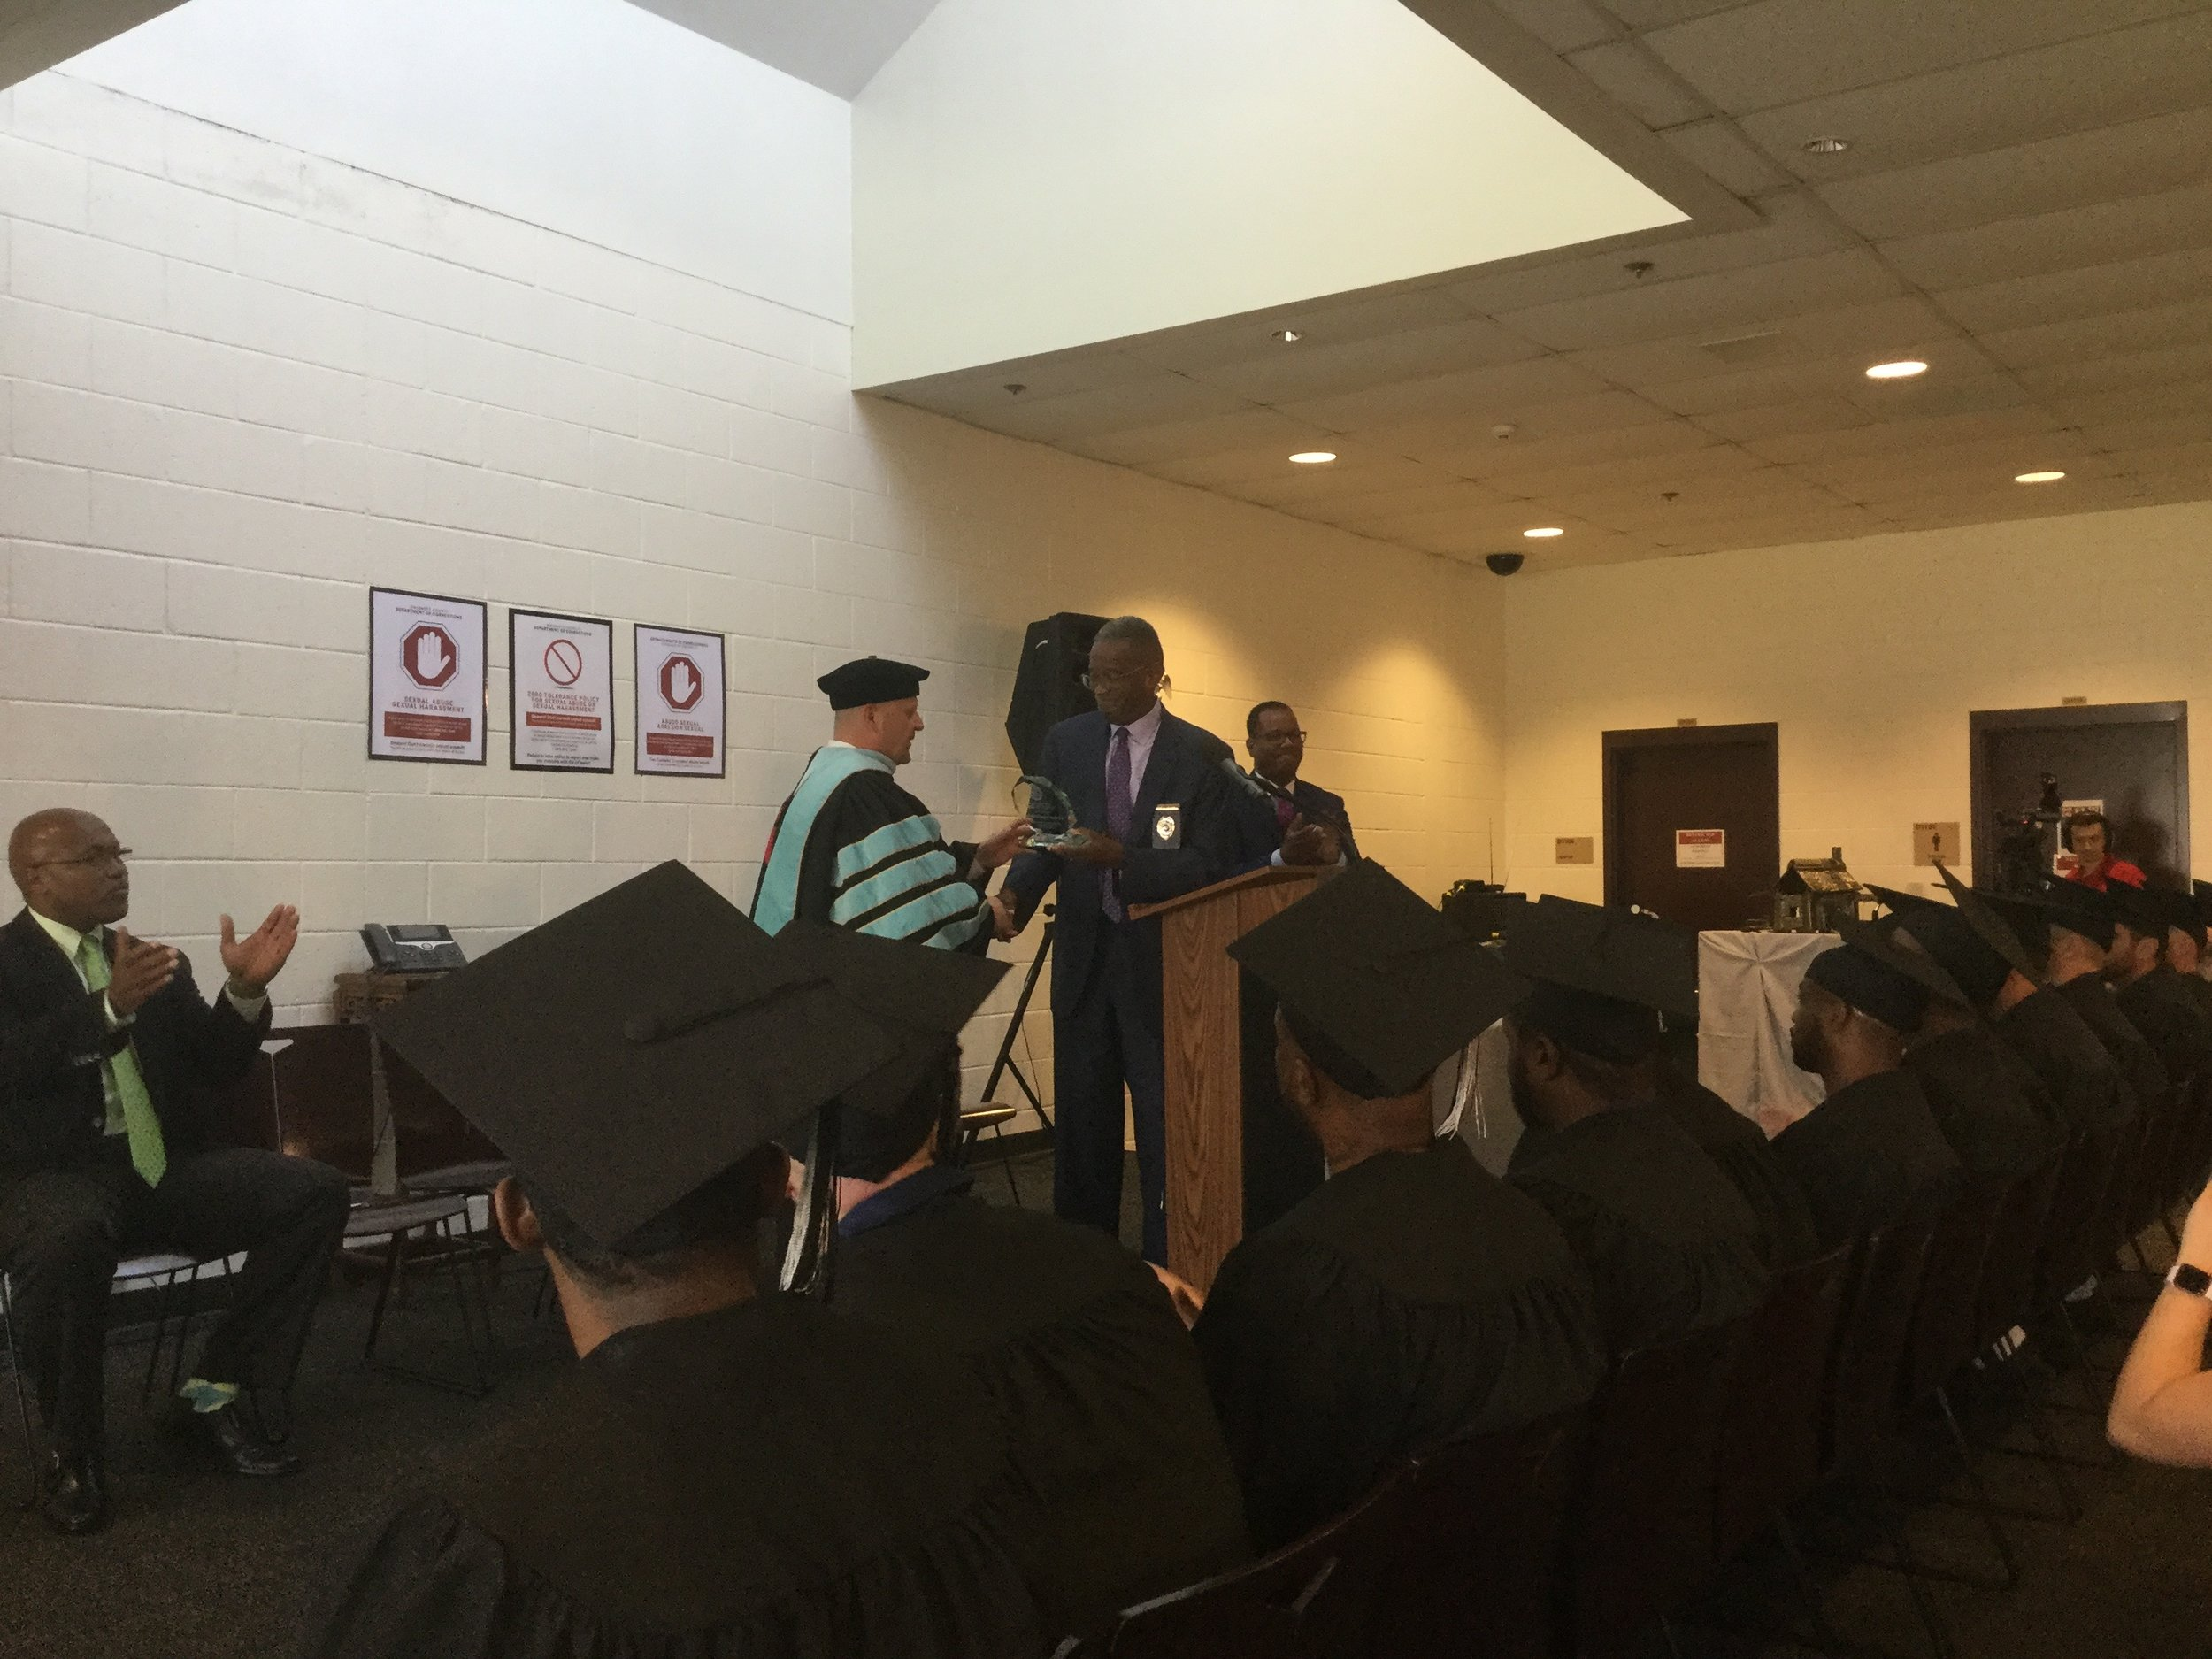 Gwinnett Correctional Warden and Gwinnett Technical College Dean distribute GEDs and awards to the graduating class.